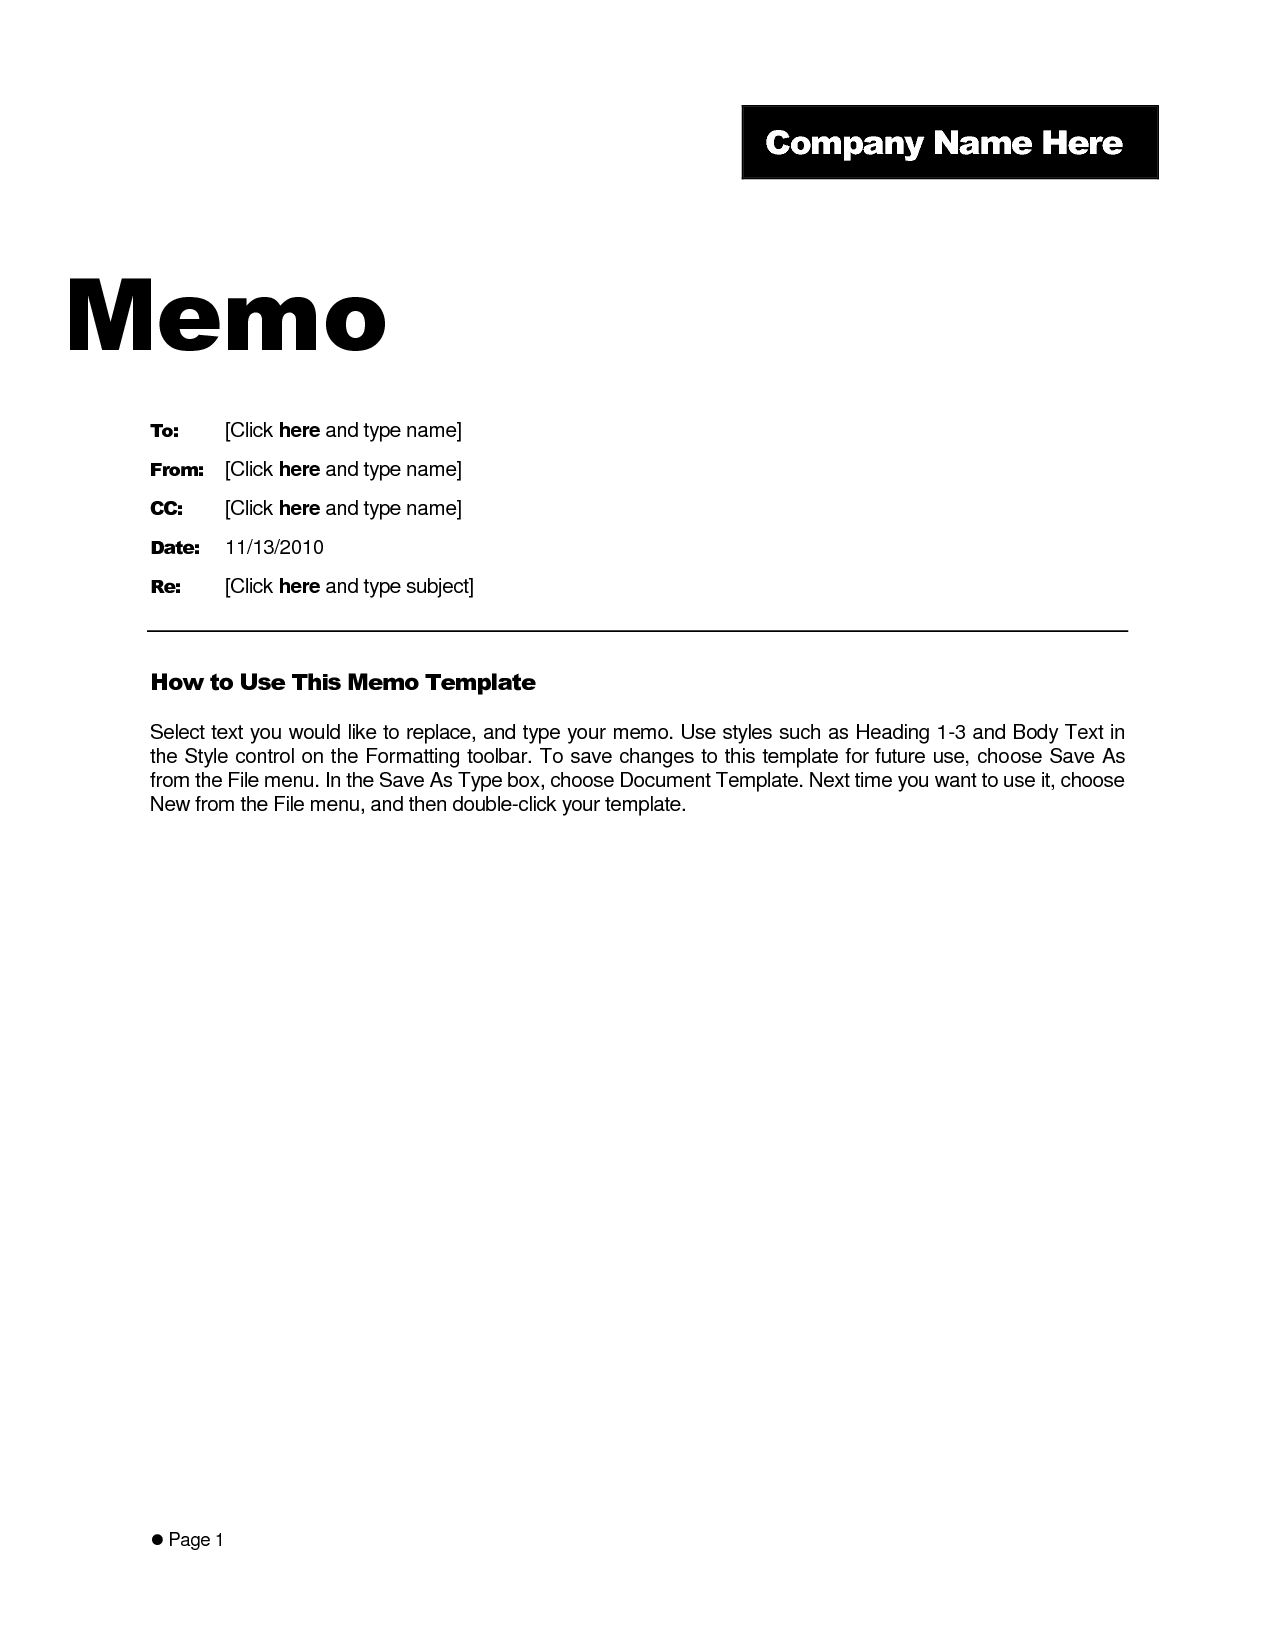 Microsoft Word Memo Template Example Teplates For Every